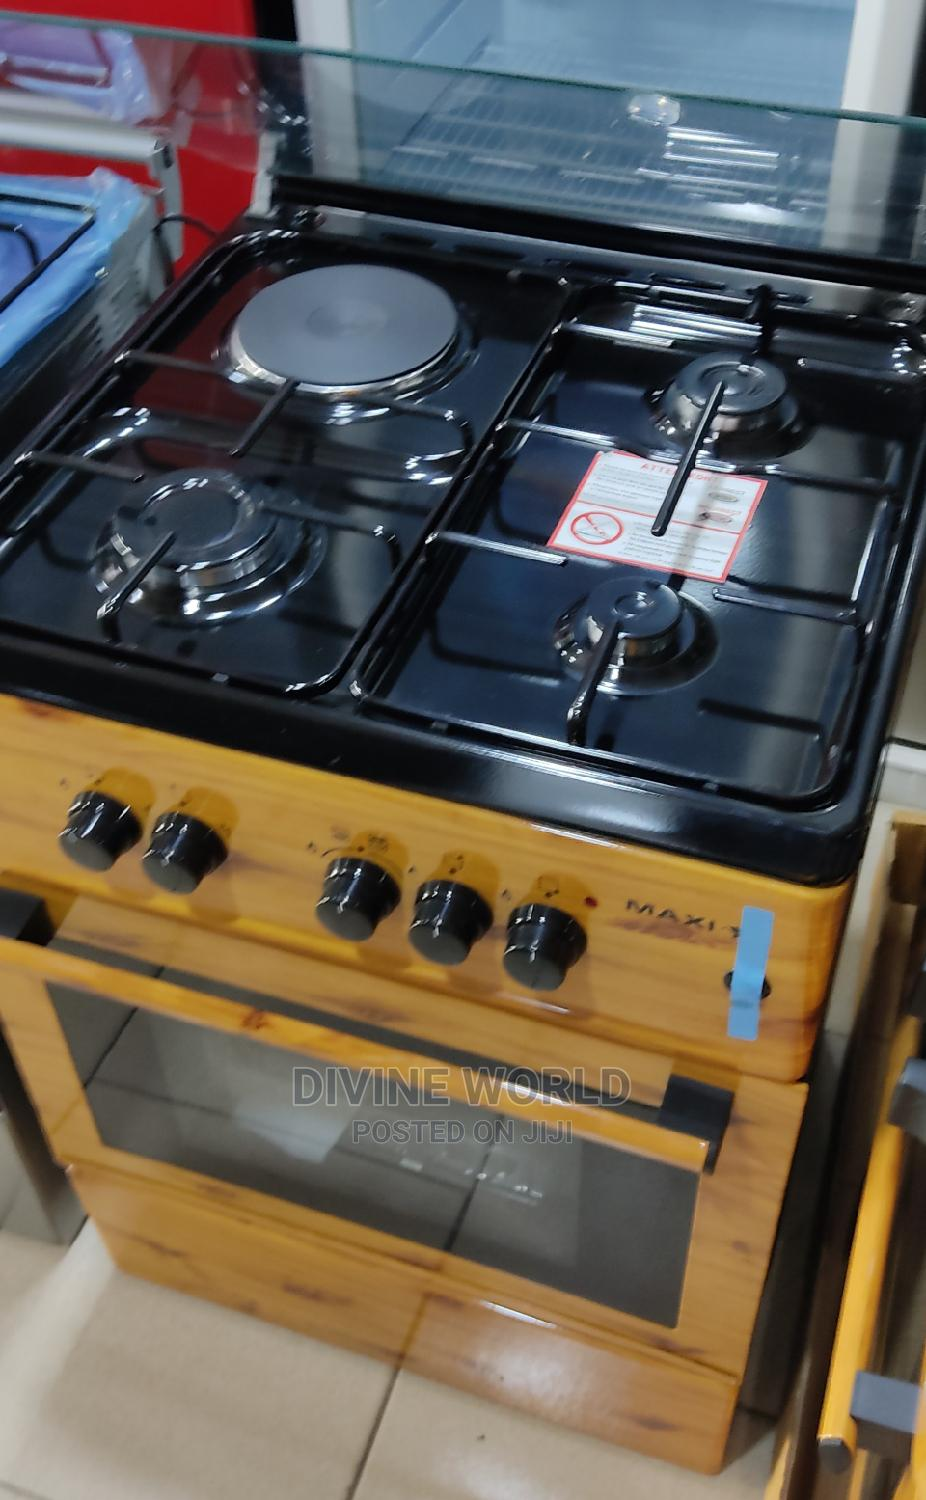 Maxi 3+1 Electric and Gas Automatic Ignition With Oven